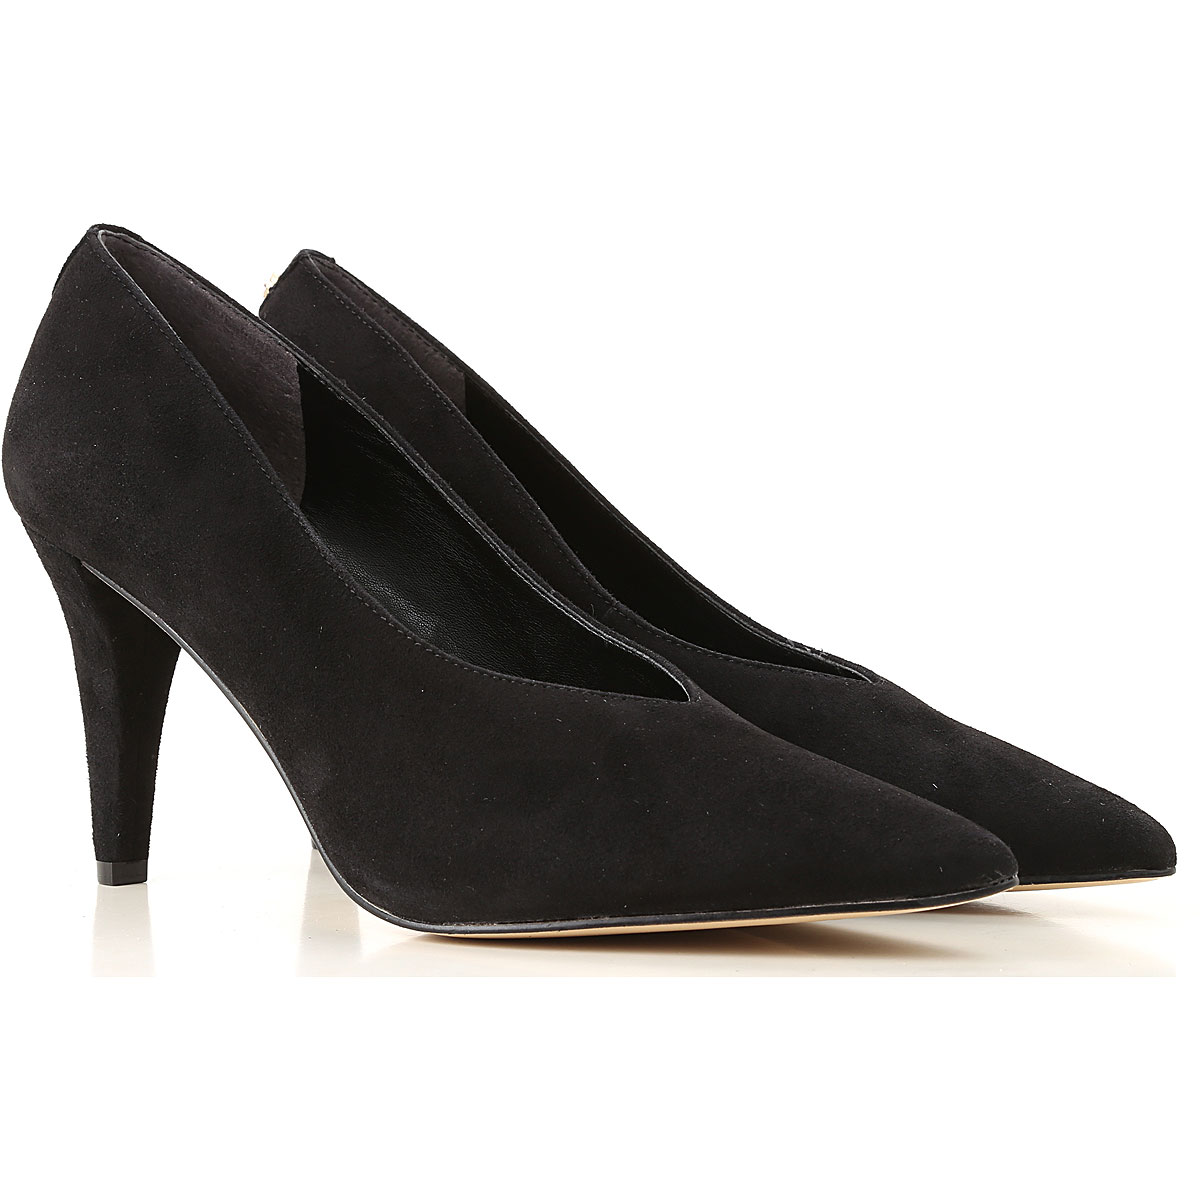 Guess Pumps & High Heels for Women in Outlet Black USA - GOOFASH